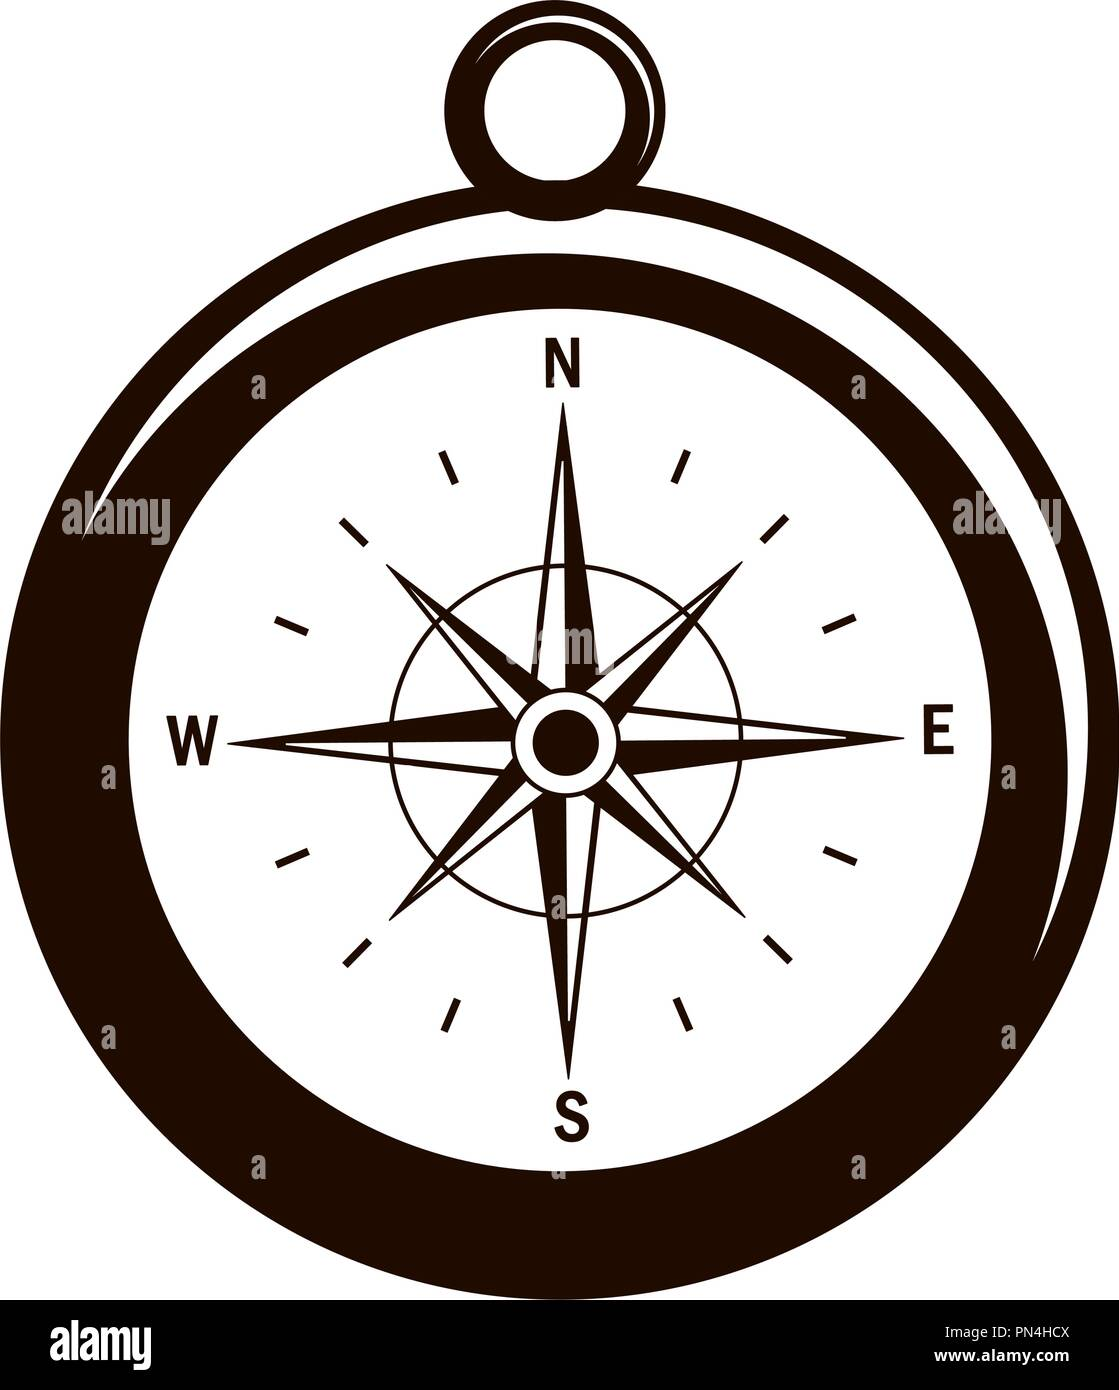 compass with north star to navigate direction - Stock Image